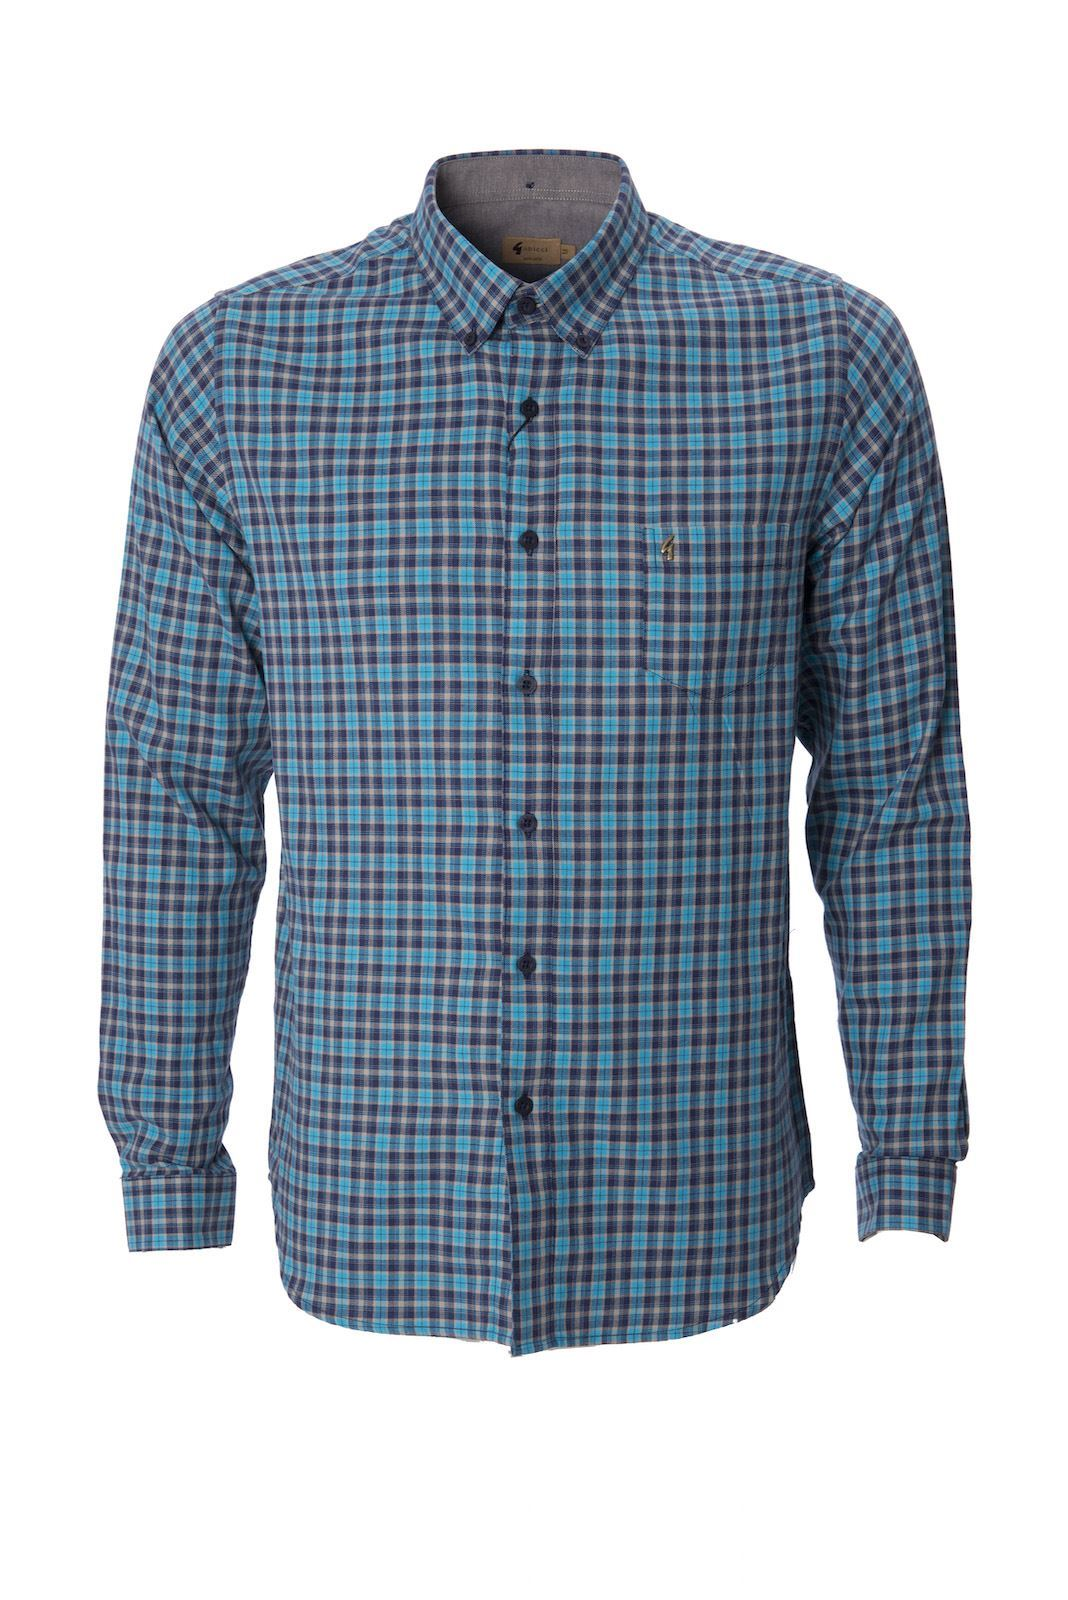 Gabicci mens shirt check button down collared long sleeve for Best casual button down shirts